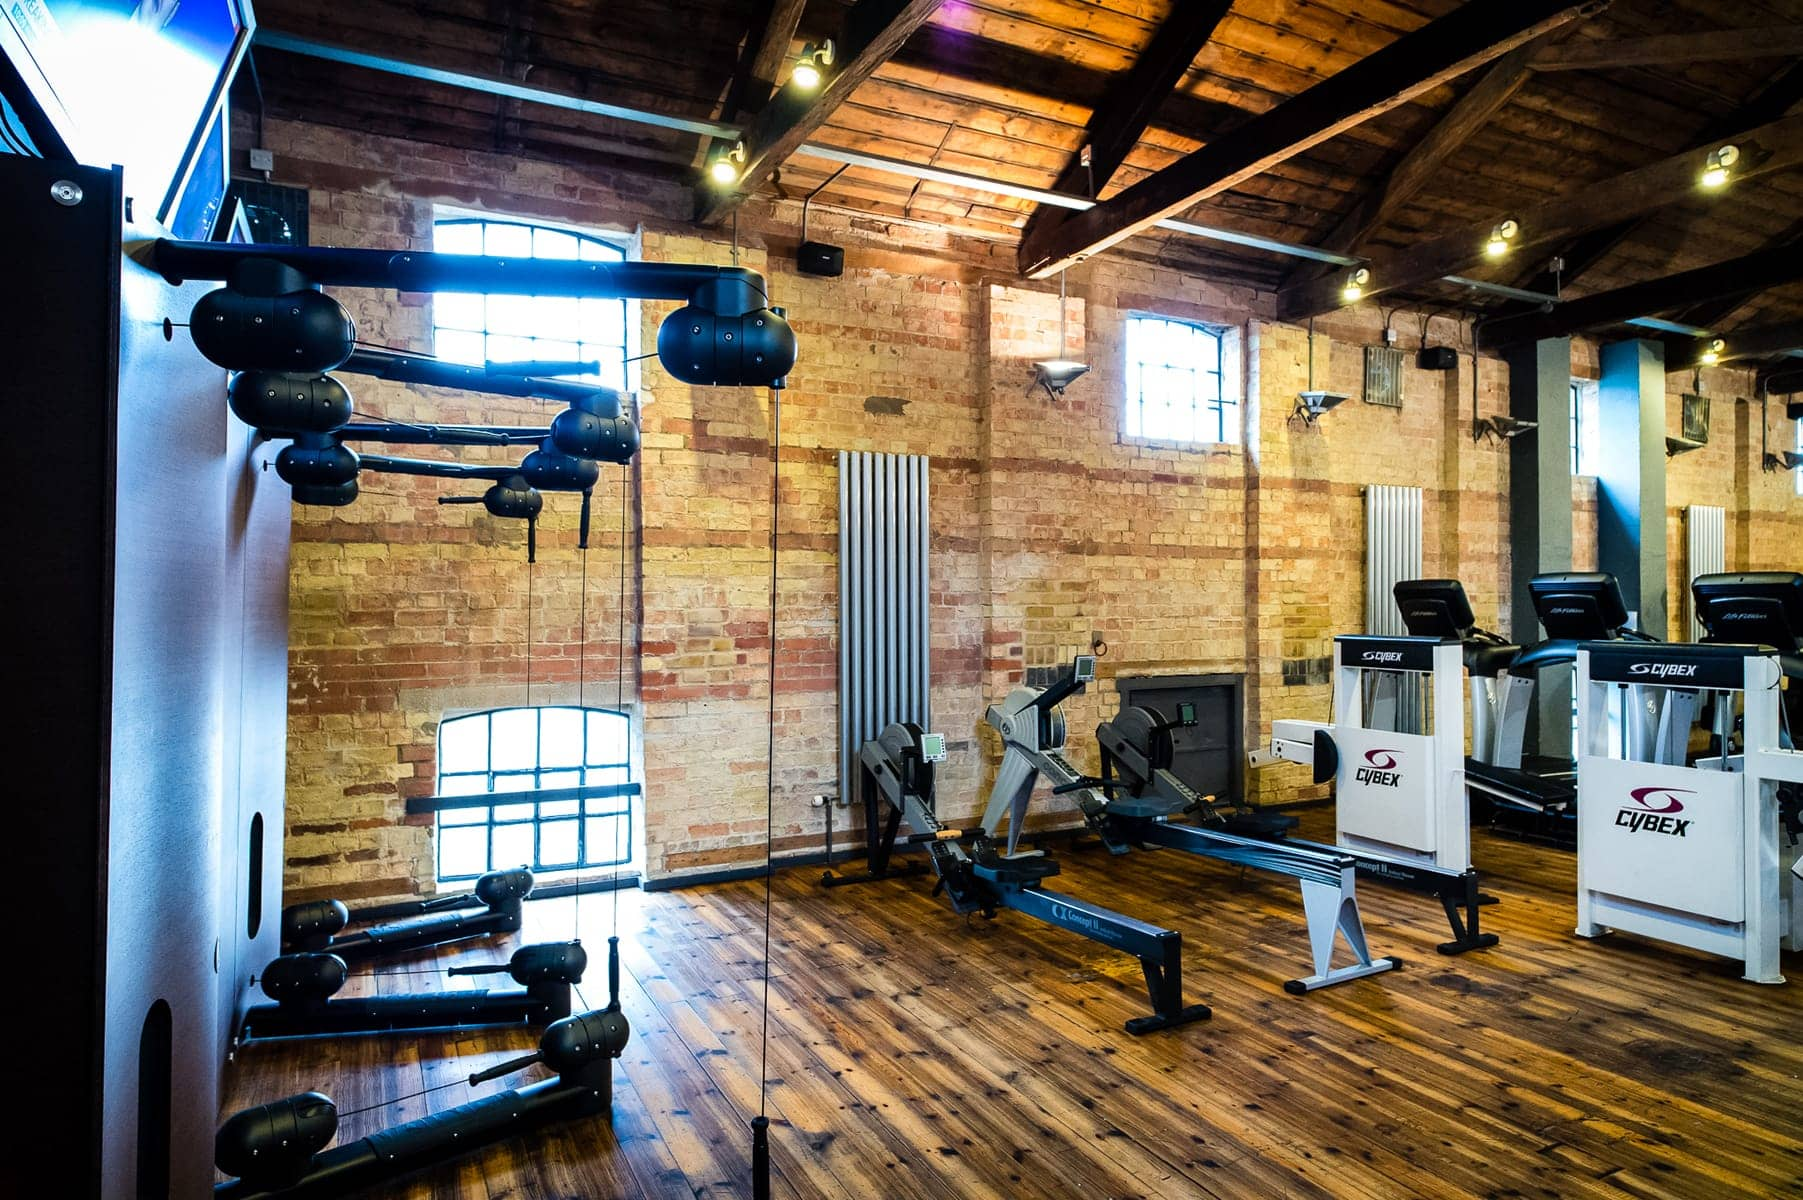 The Glasswork | Student Discounts on Gym Membership